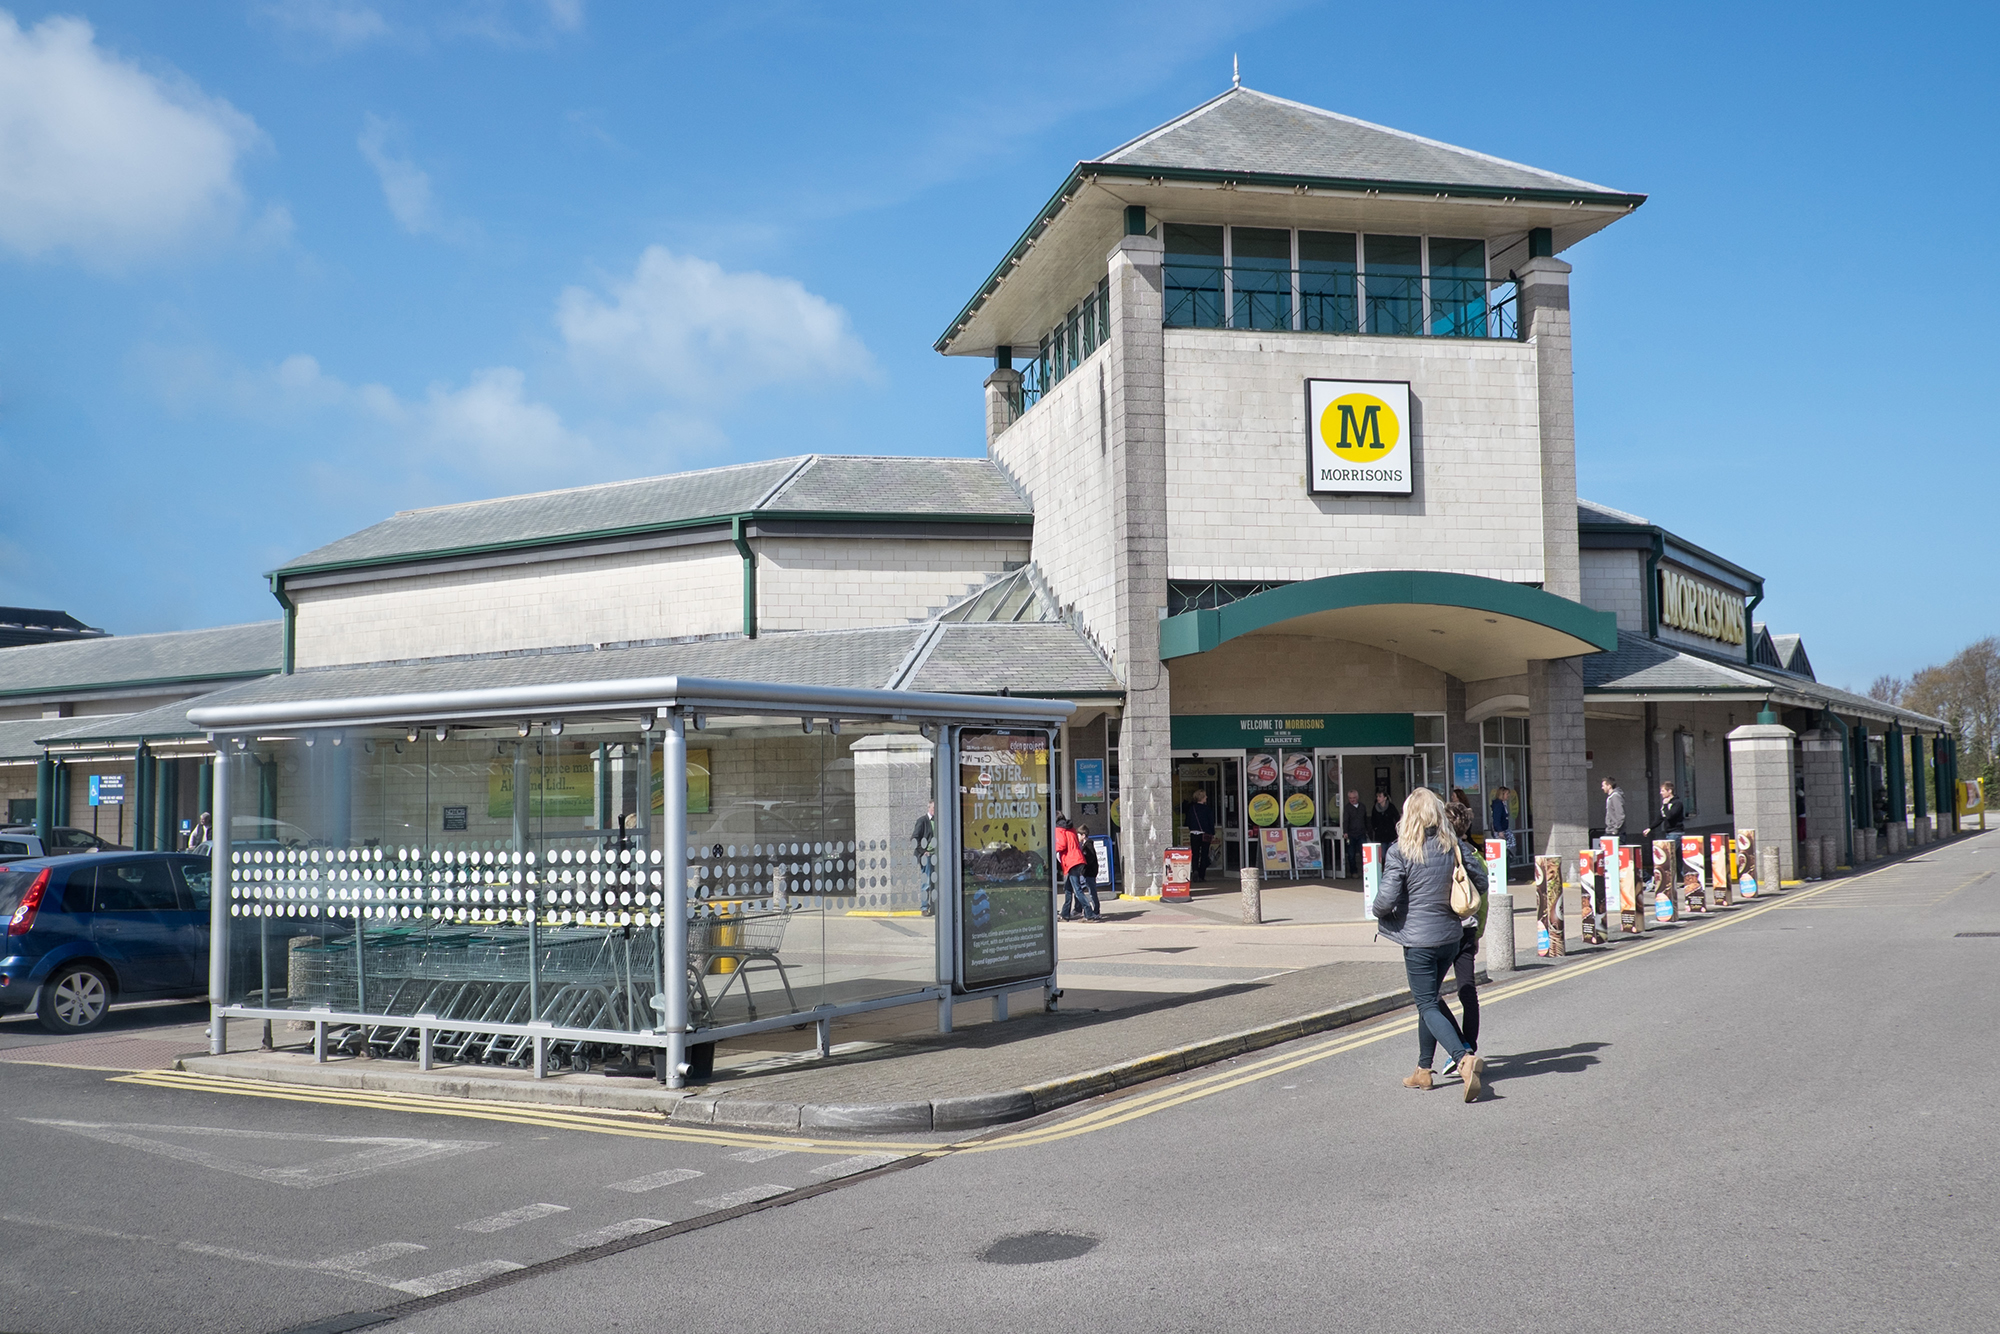 Morrisons Supermarket, Newquay